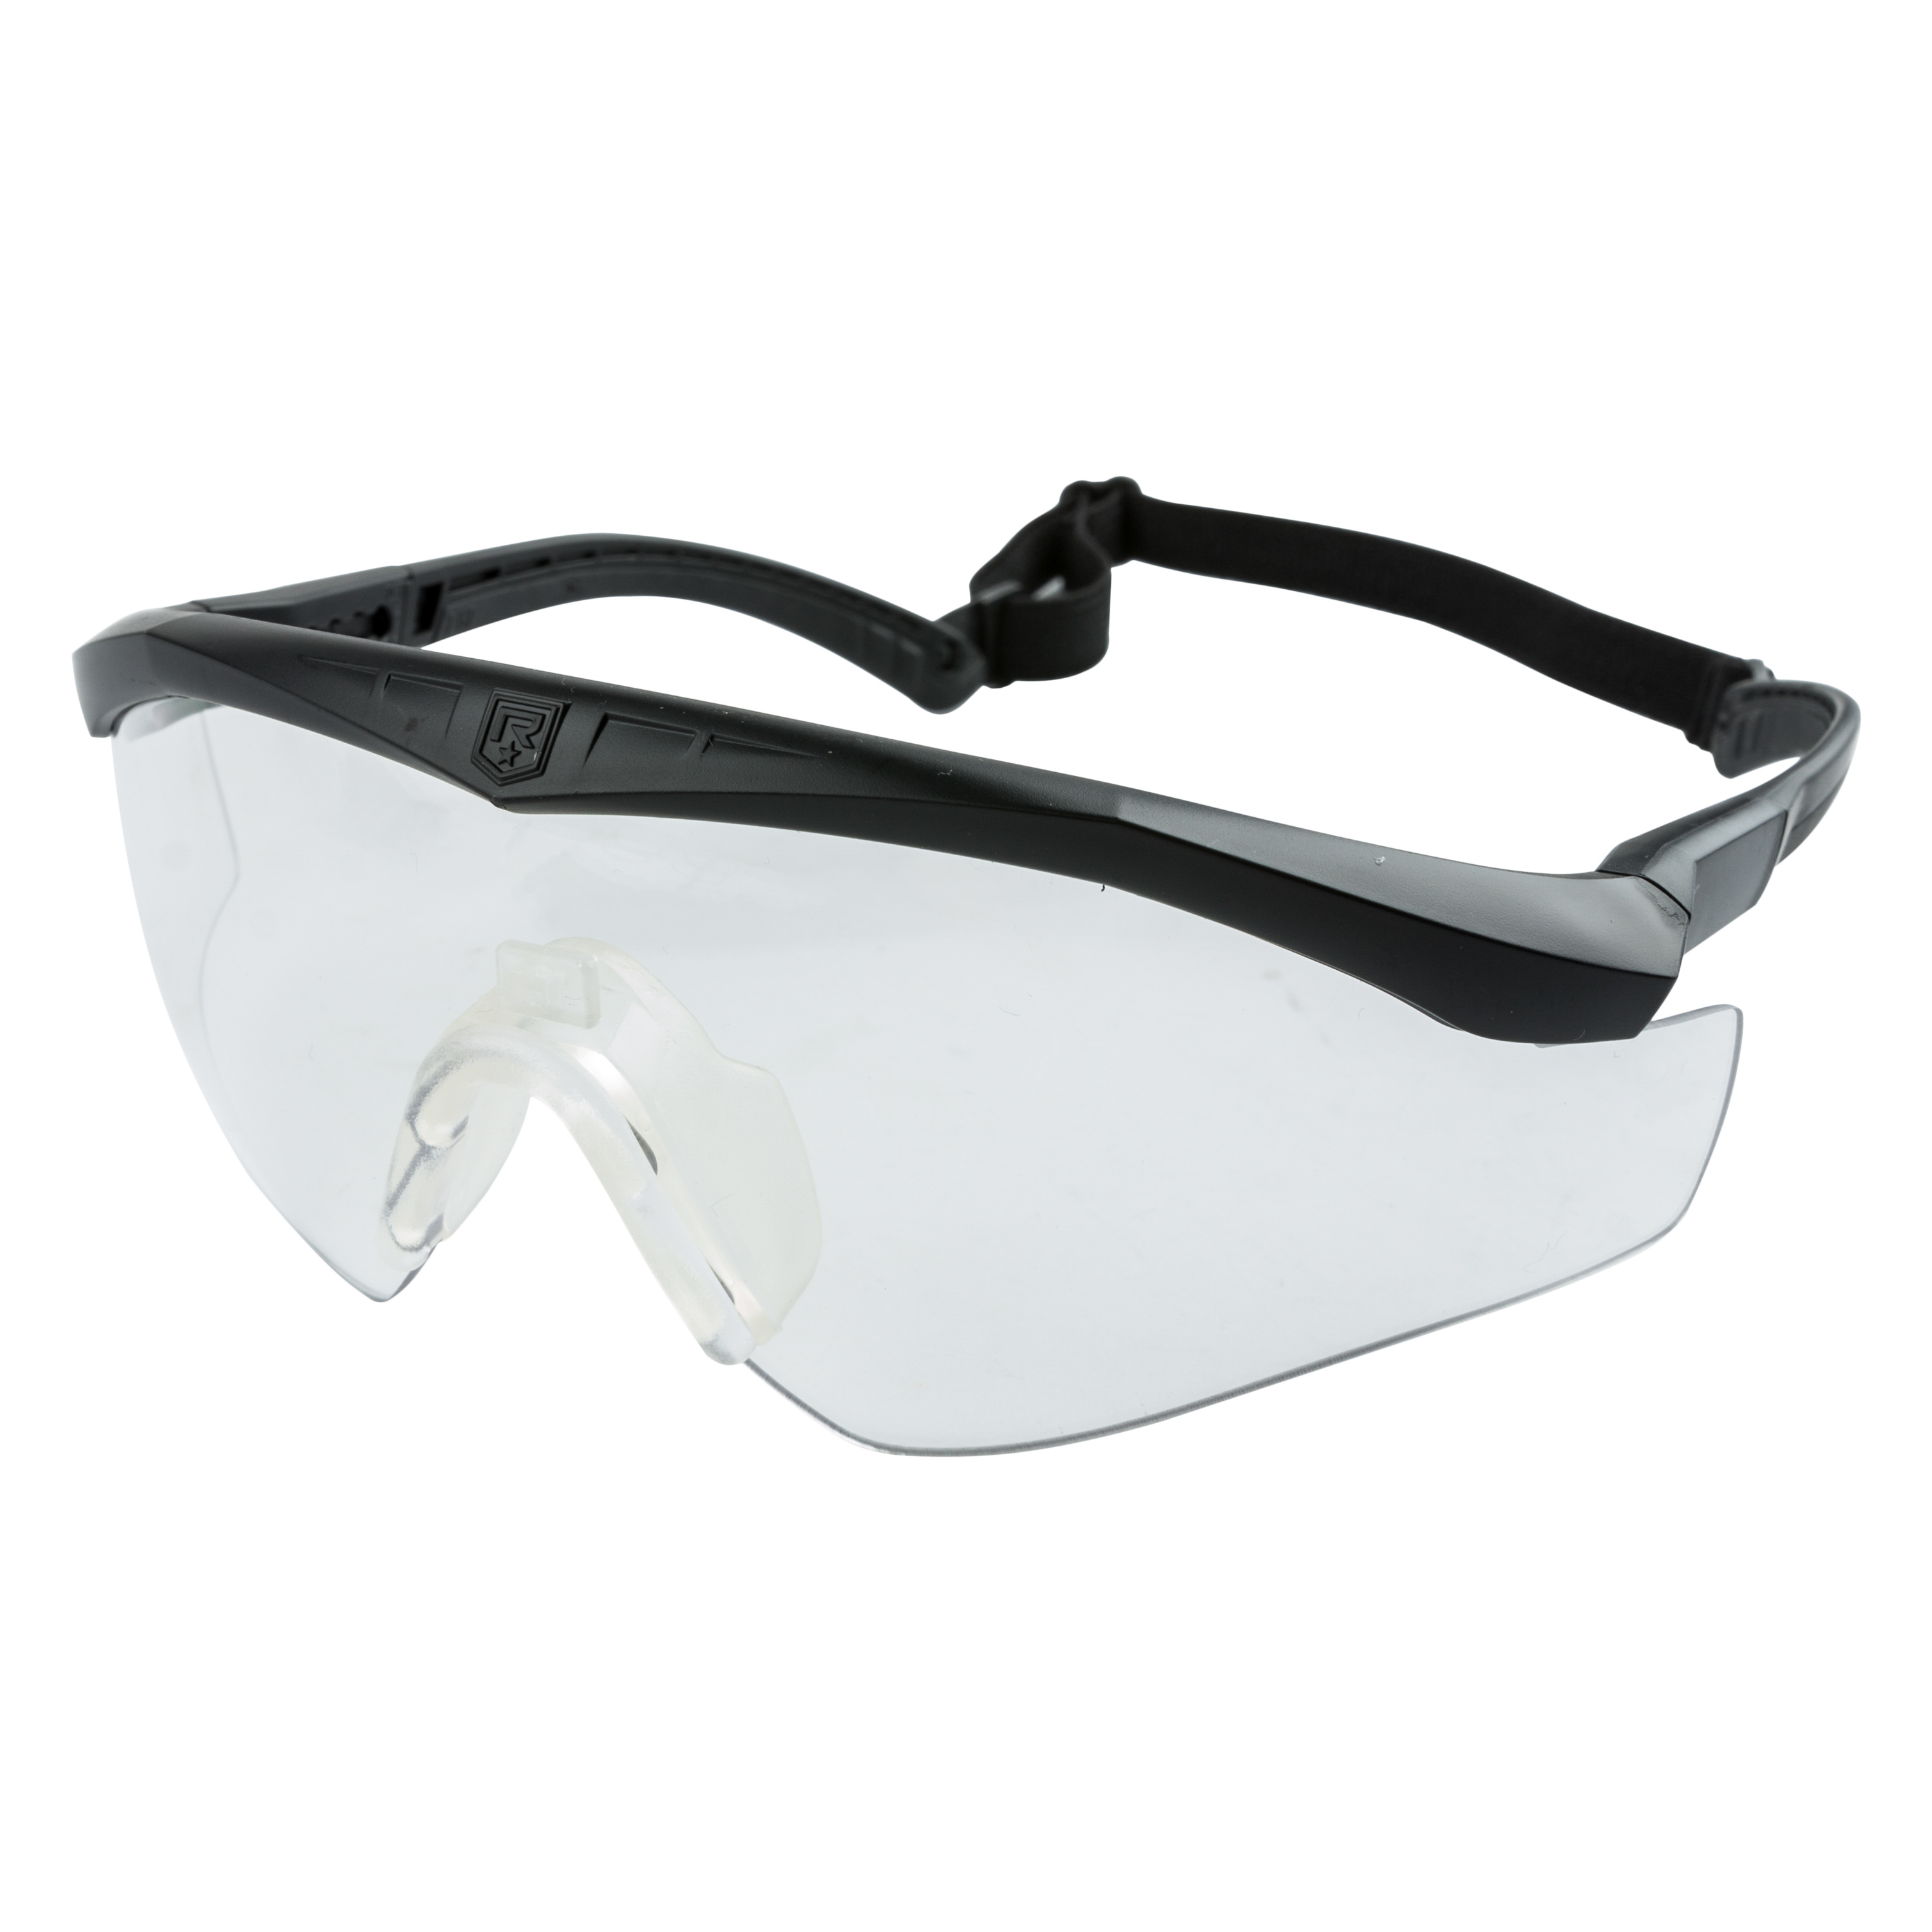 Revision Lunettes Sawfly Max-Wrap Basic Kit verre clair small